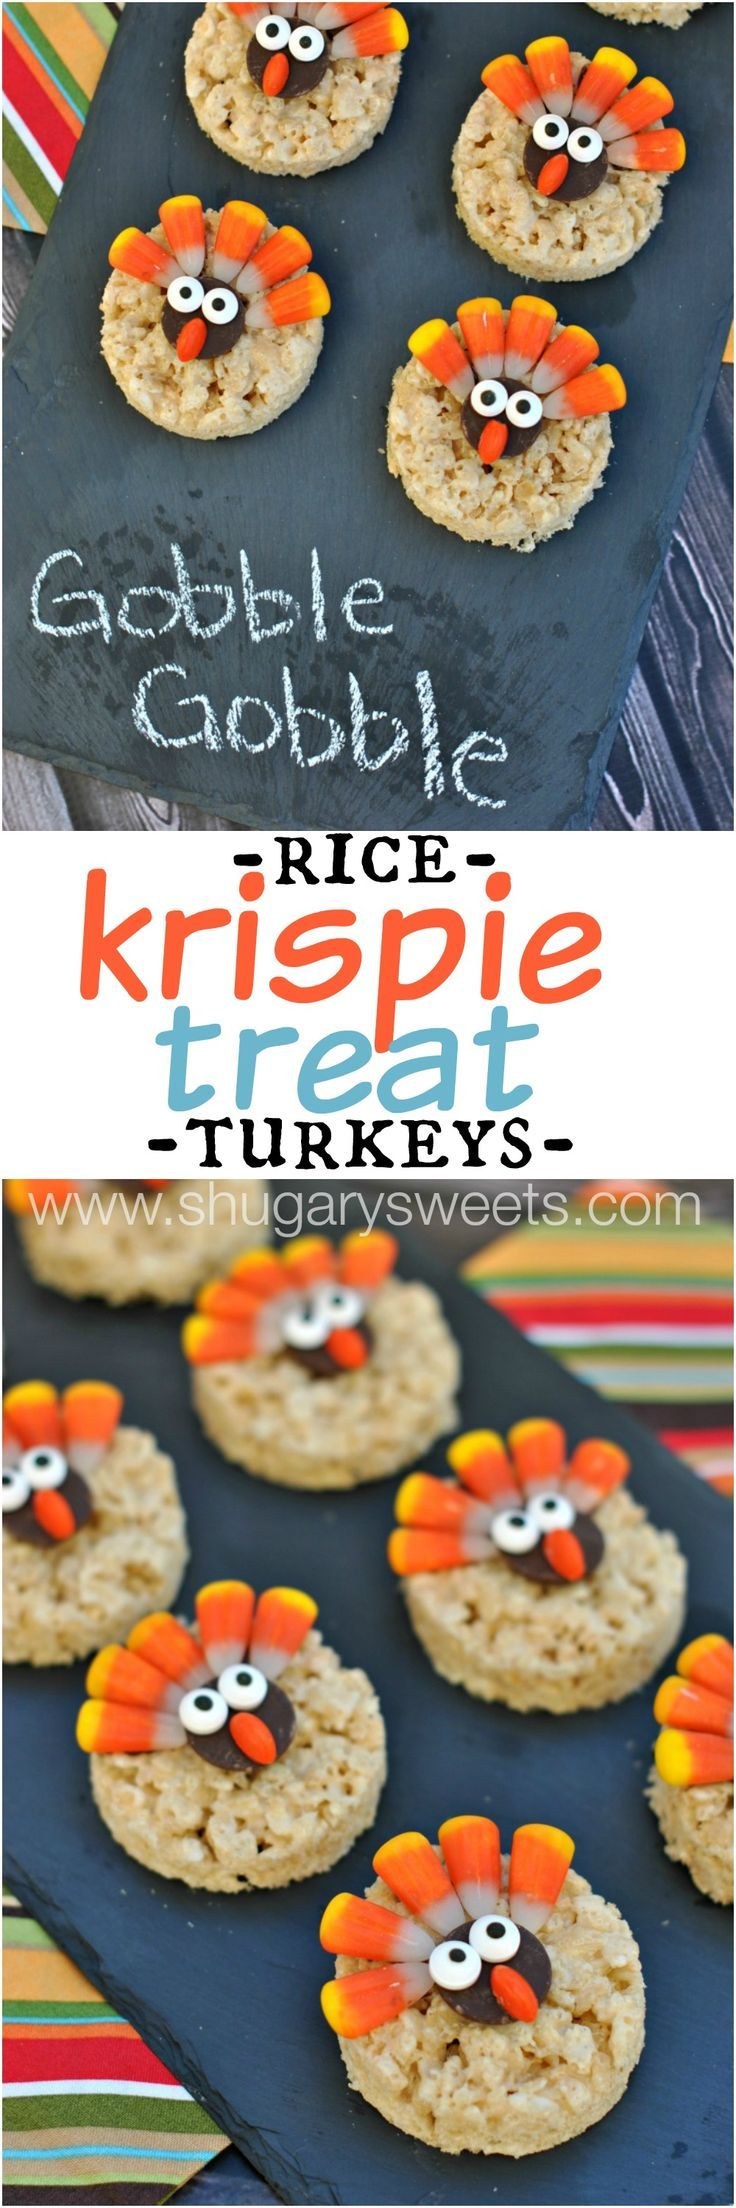 Turkey Rice Krispie Treats decorated for Thanksgiving! Easy dessert that kids can help make!